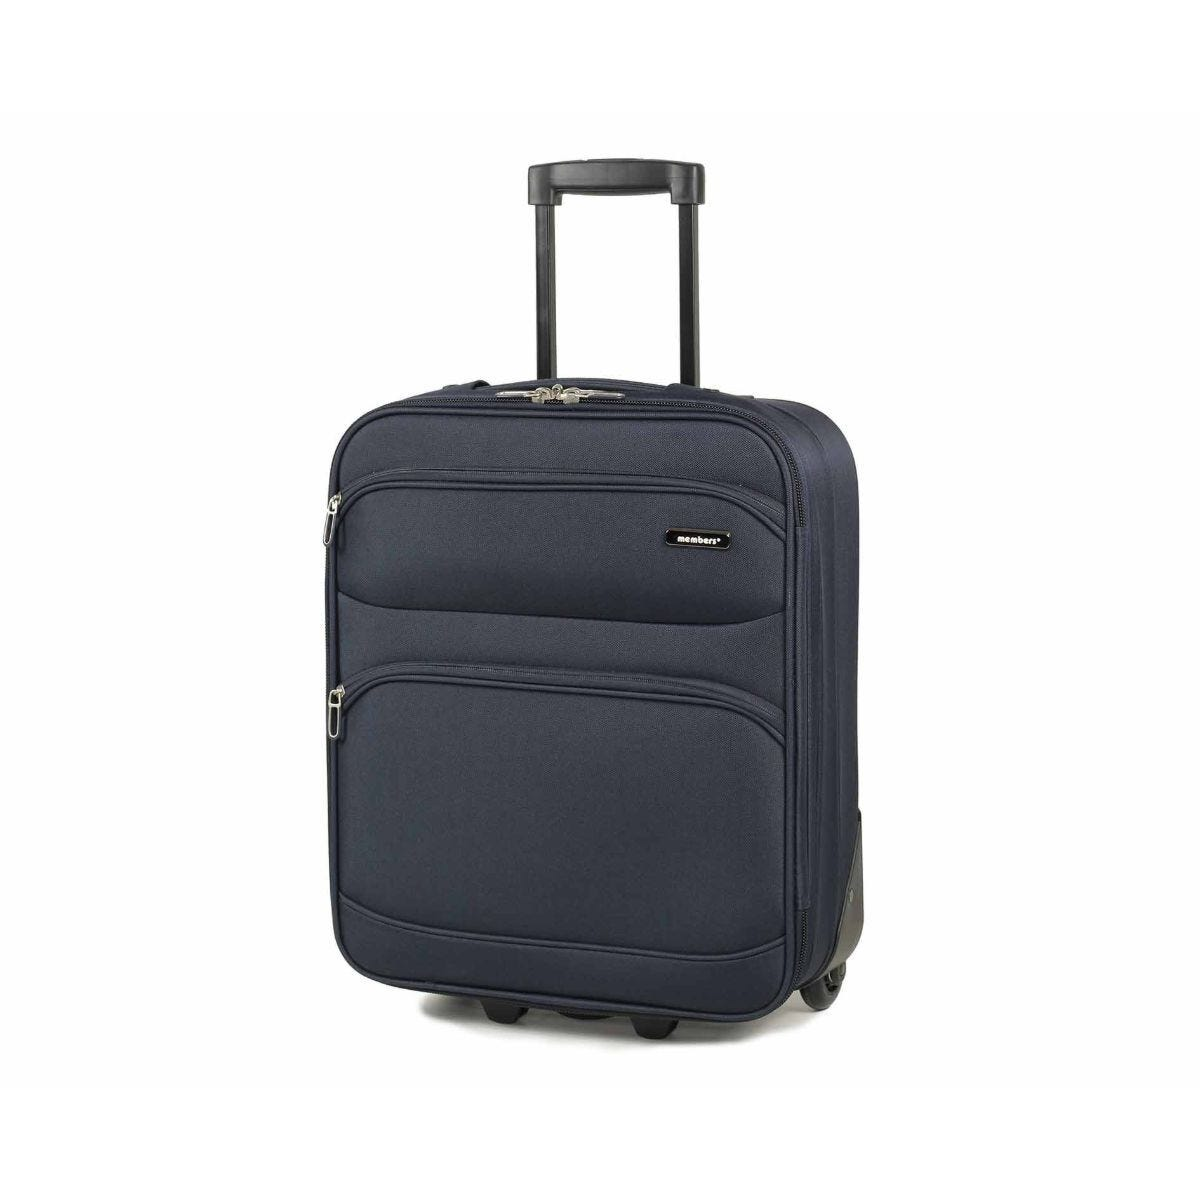 Members by Rock Topaz Carry-on Lightweight Two Wheel Trolley Suitcase 55cm Navy